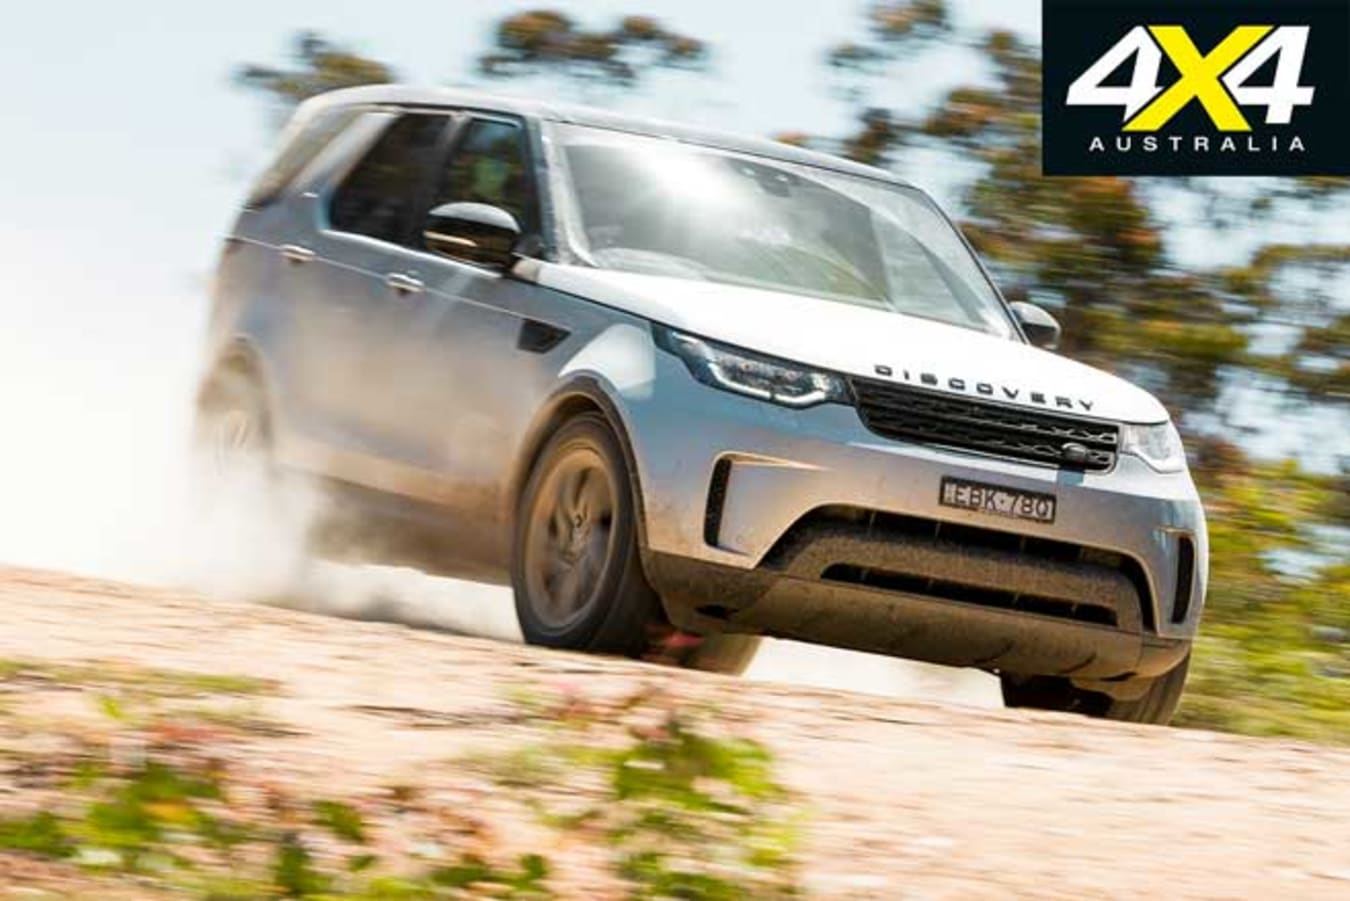 2020 4 X 4 Of The Year Land Rover Discovery Sd 6 Touring Jpg